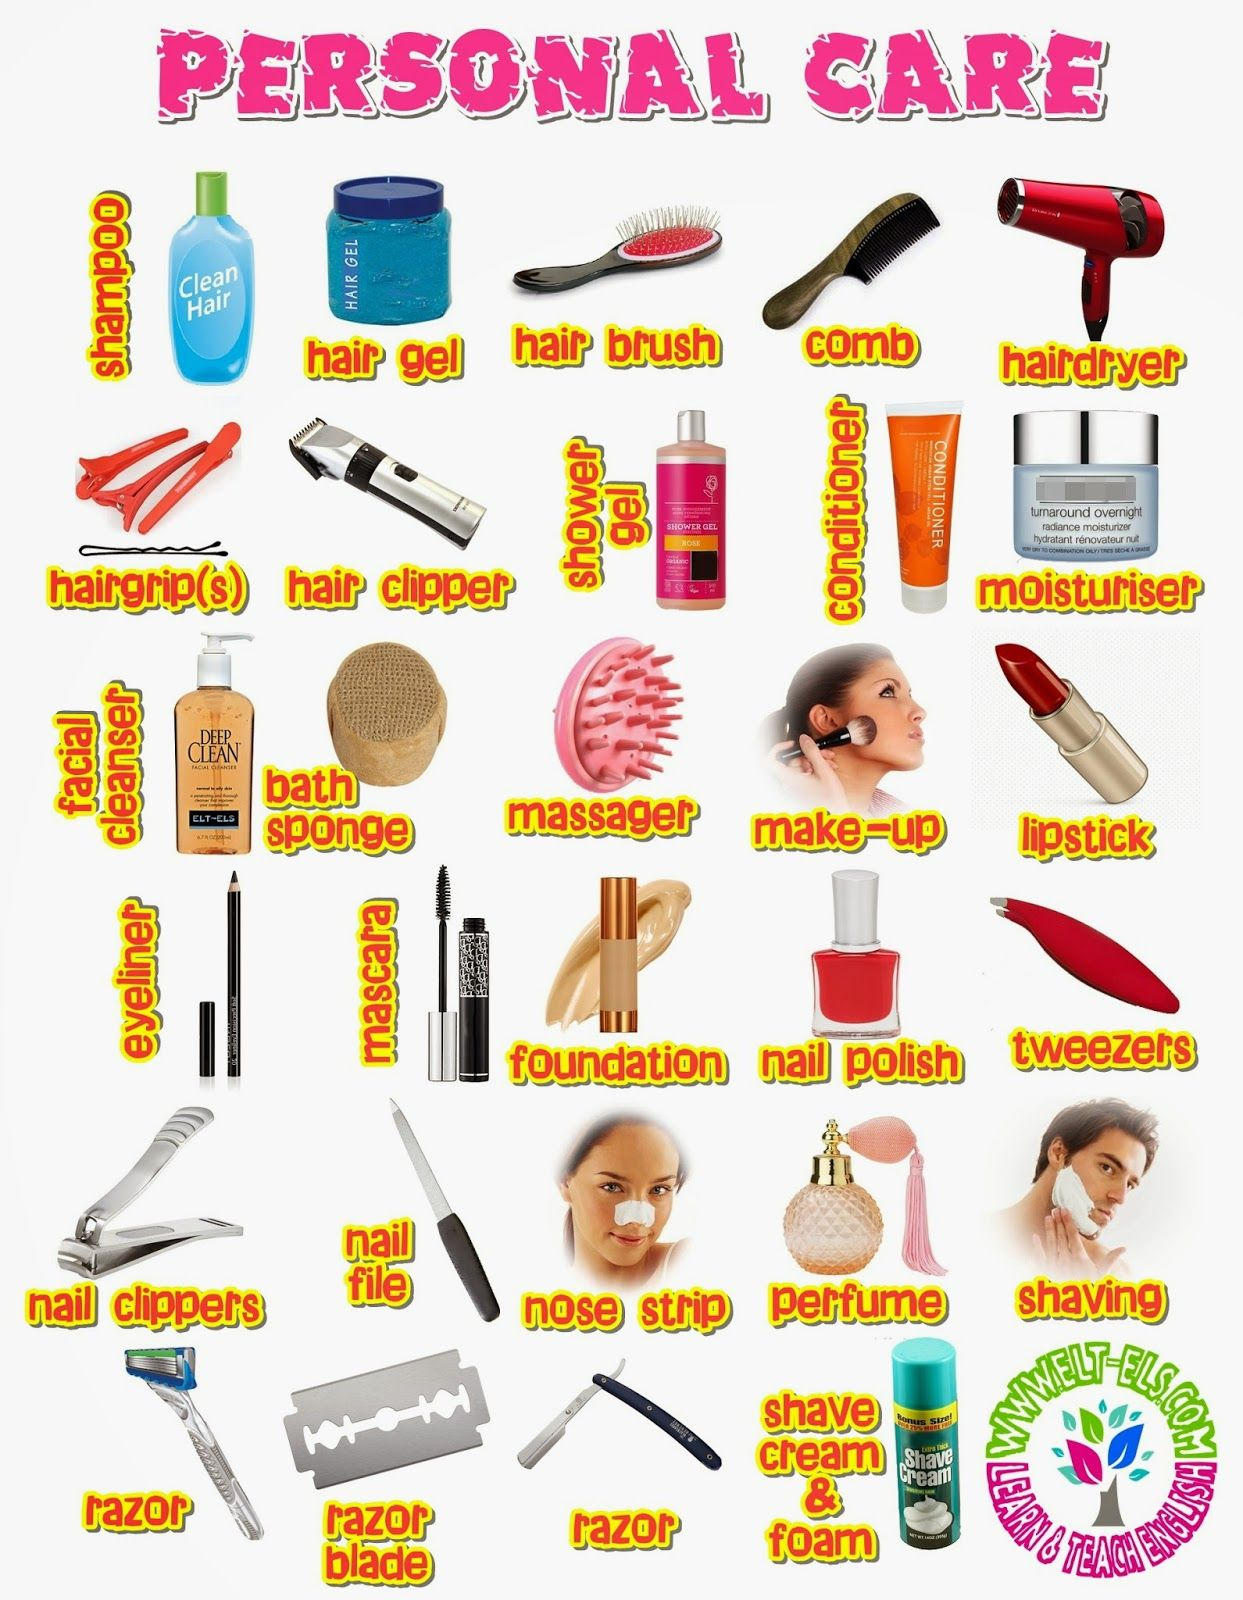 Personal Care Vocabulary With Images